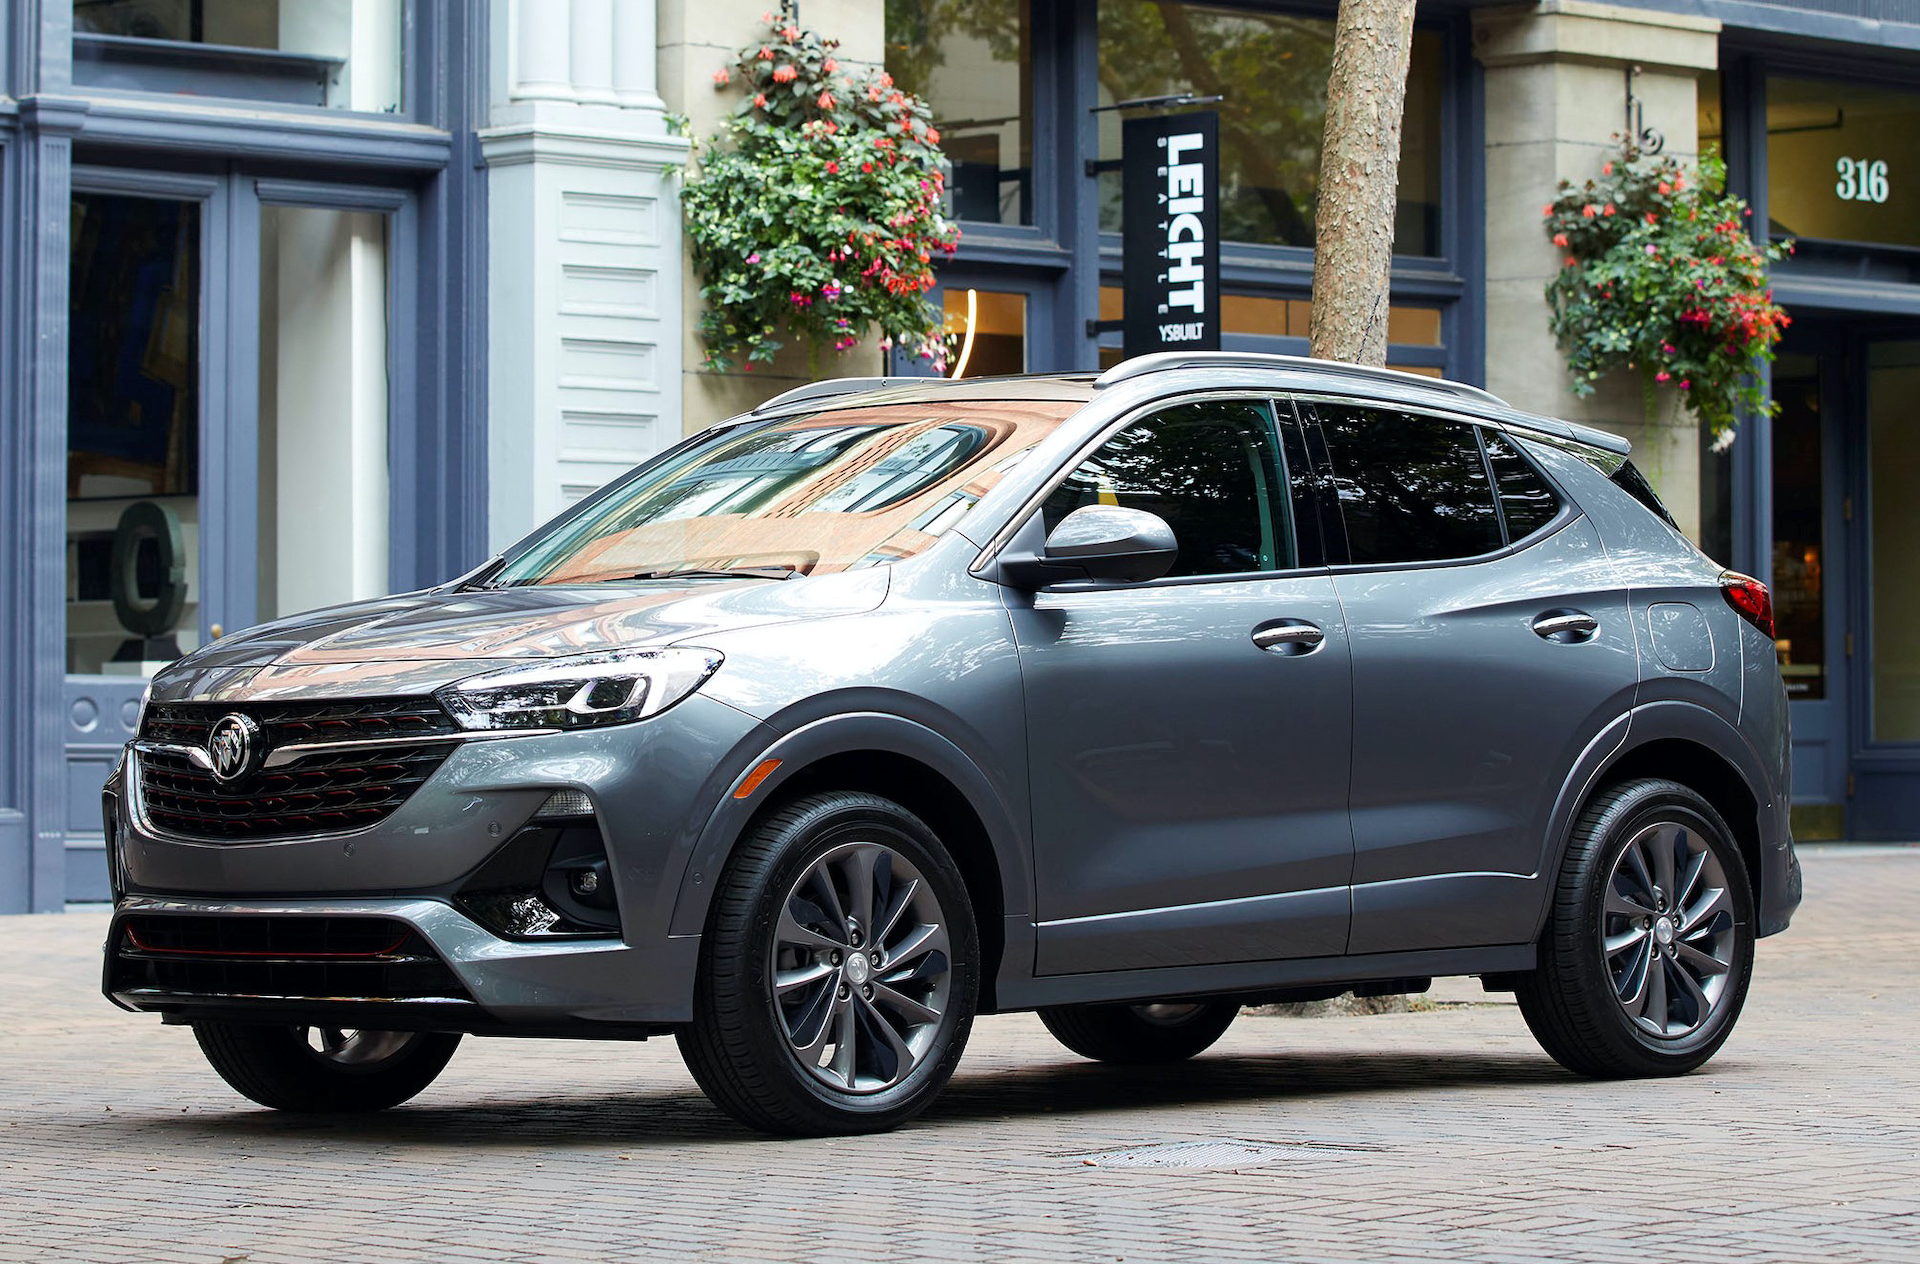 2021 Buick Encore Gx Review, New York Auto Show Canceled 2022 Buick Encore Reviews, Preferred, Price